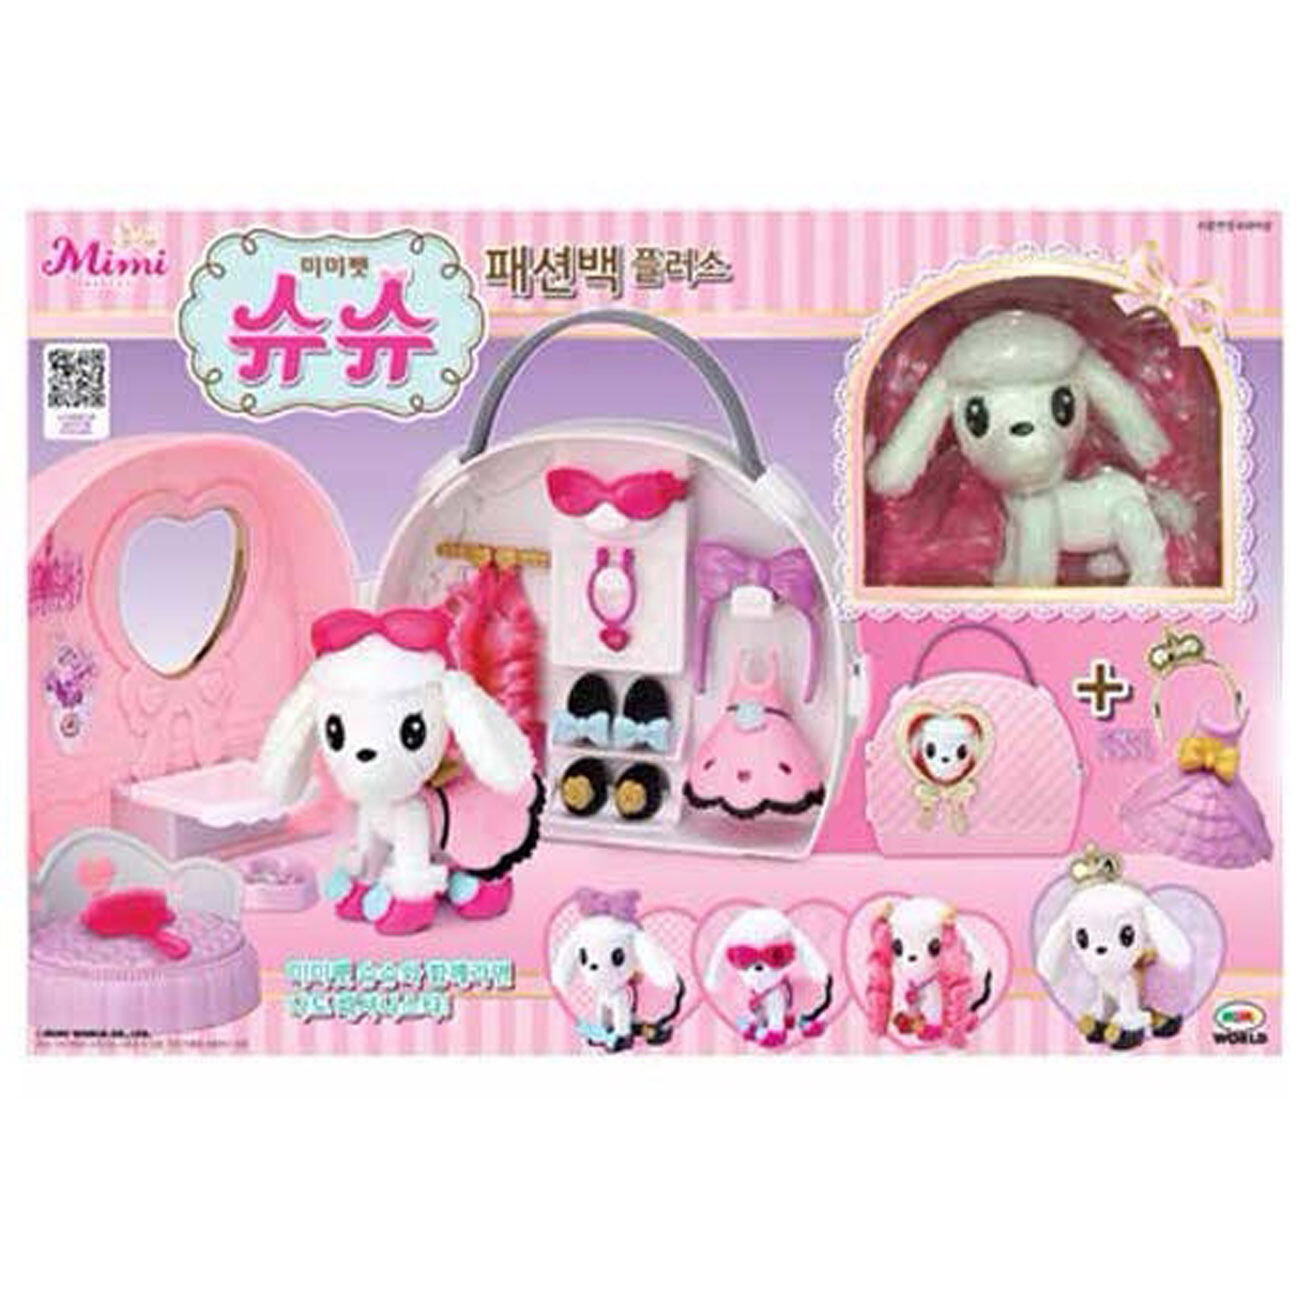 Little Mimi Pet Bag House Toy Set Korean Cute Puppy Dressing Play Doll for Kids